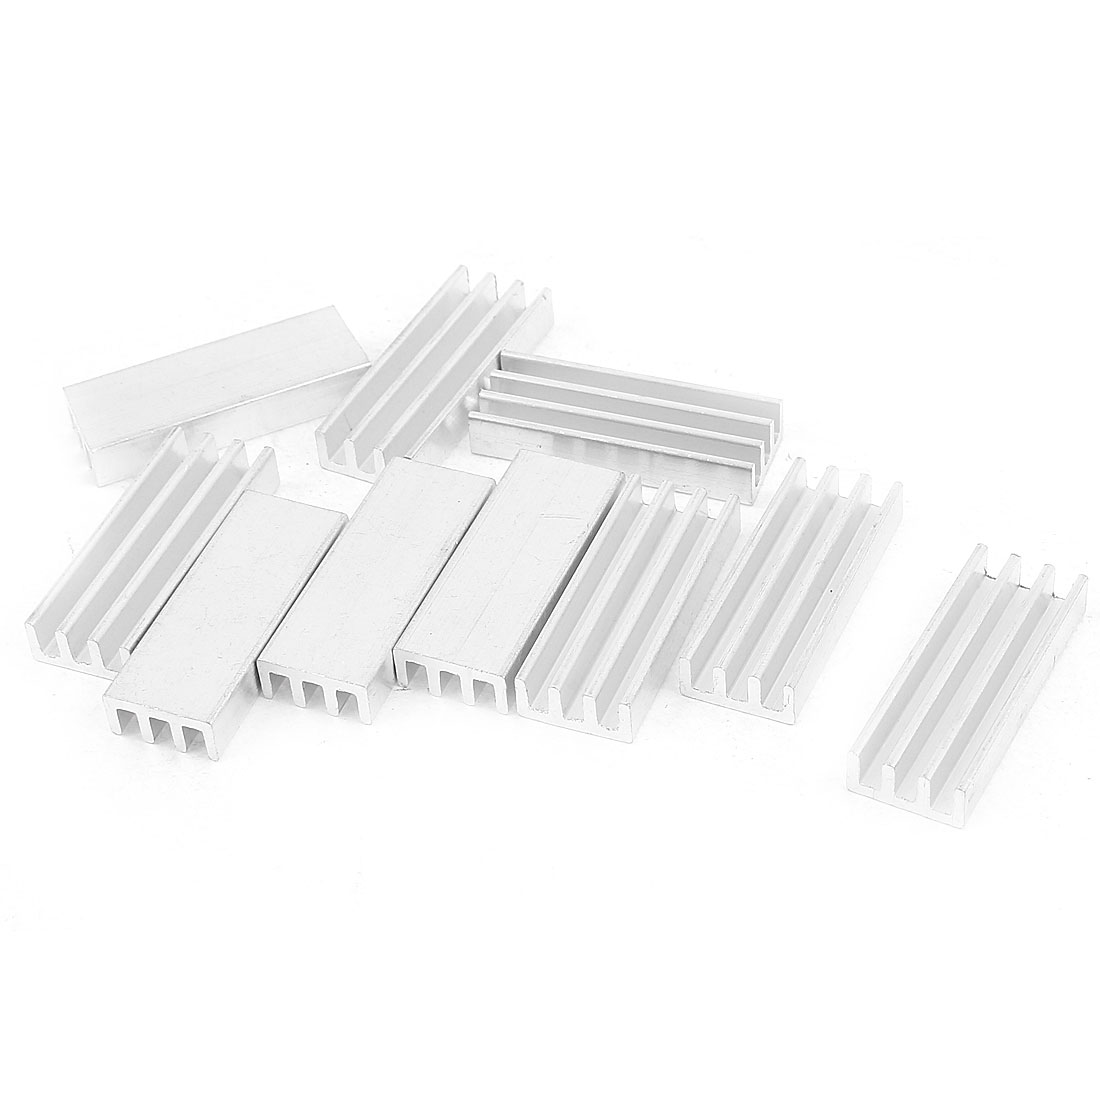 10 Pcs Silver Tone Aluminum Cooler Radiator Heat Sink Heatsink 30mm x 11mm x 5mm